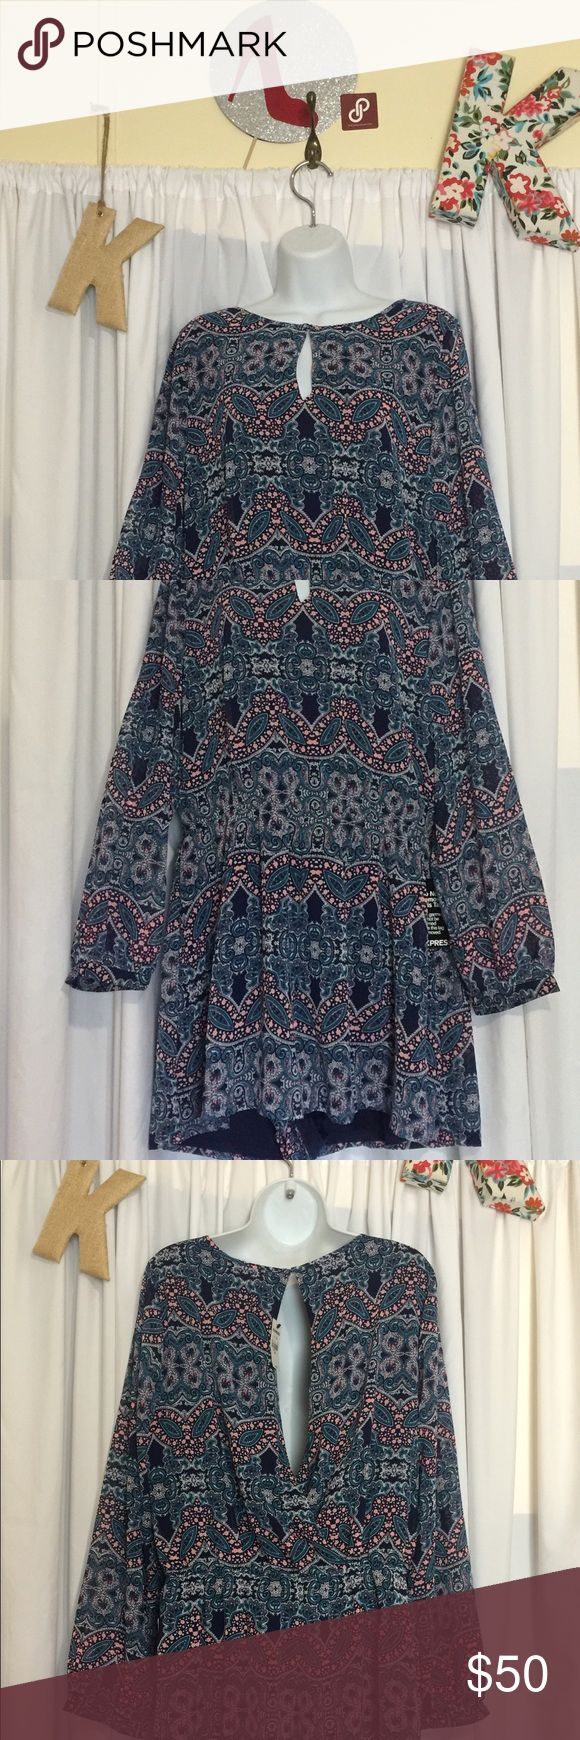 Adorable multi color jumper by Express in size L This jumper is a soft sheer jumper with a liner by Express NWT in size L in a multi blue color and long sleeve 💙 Please ask any questions always happy to answer, Happy Poshing 😊💖💙🎀 Express Other